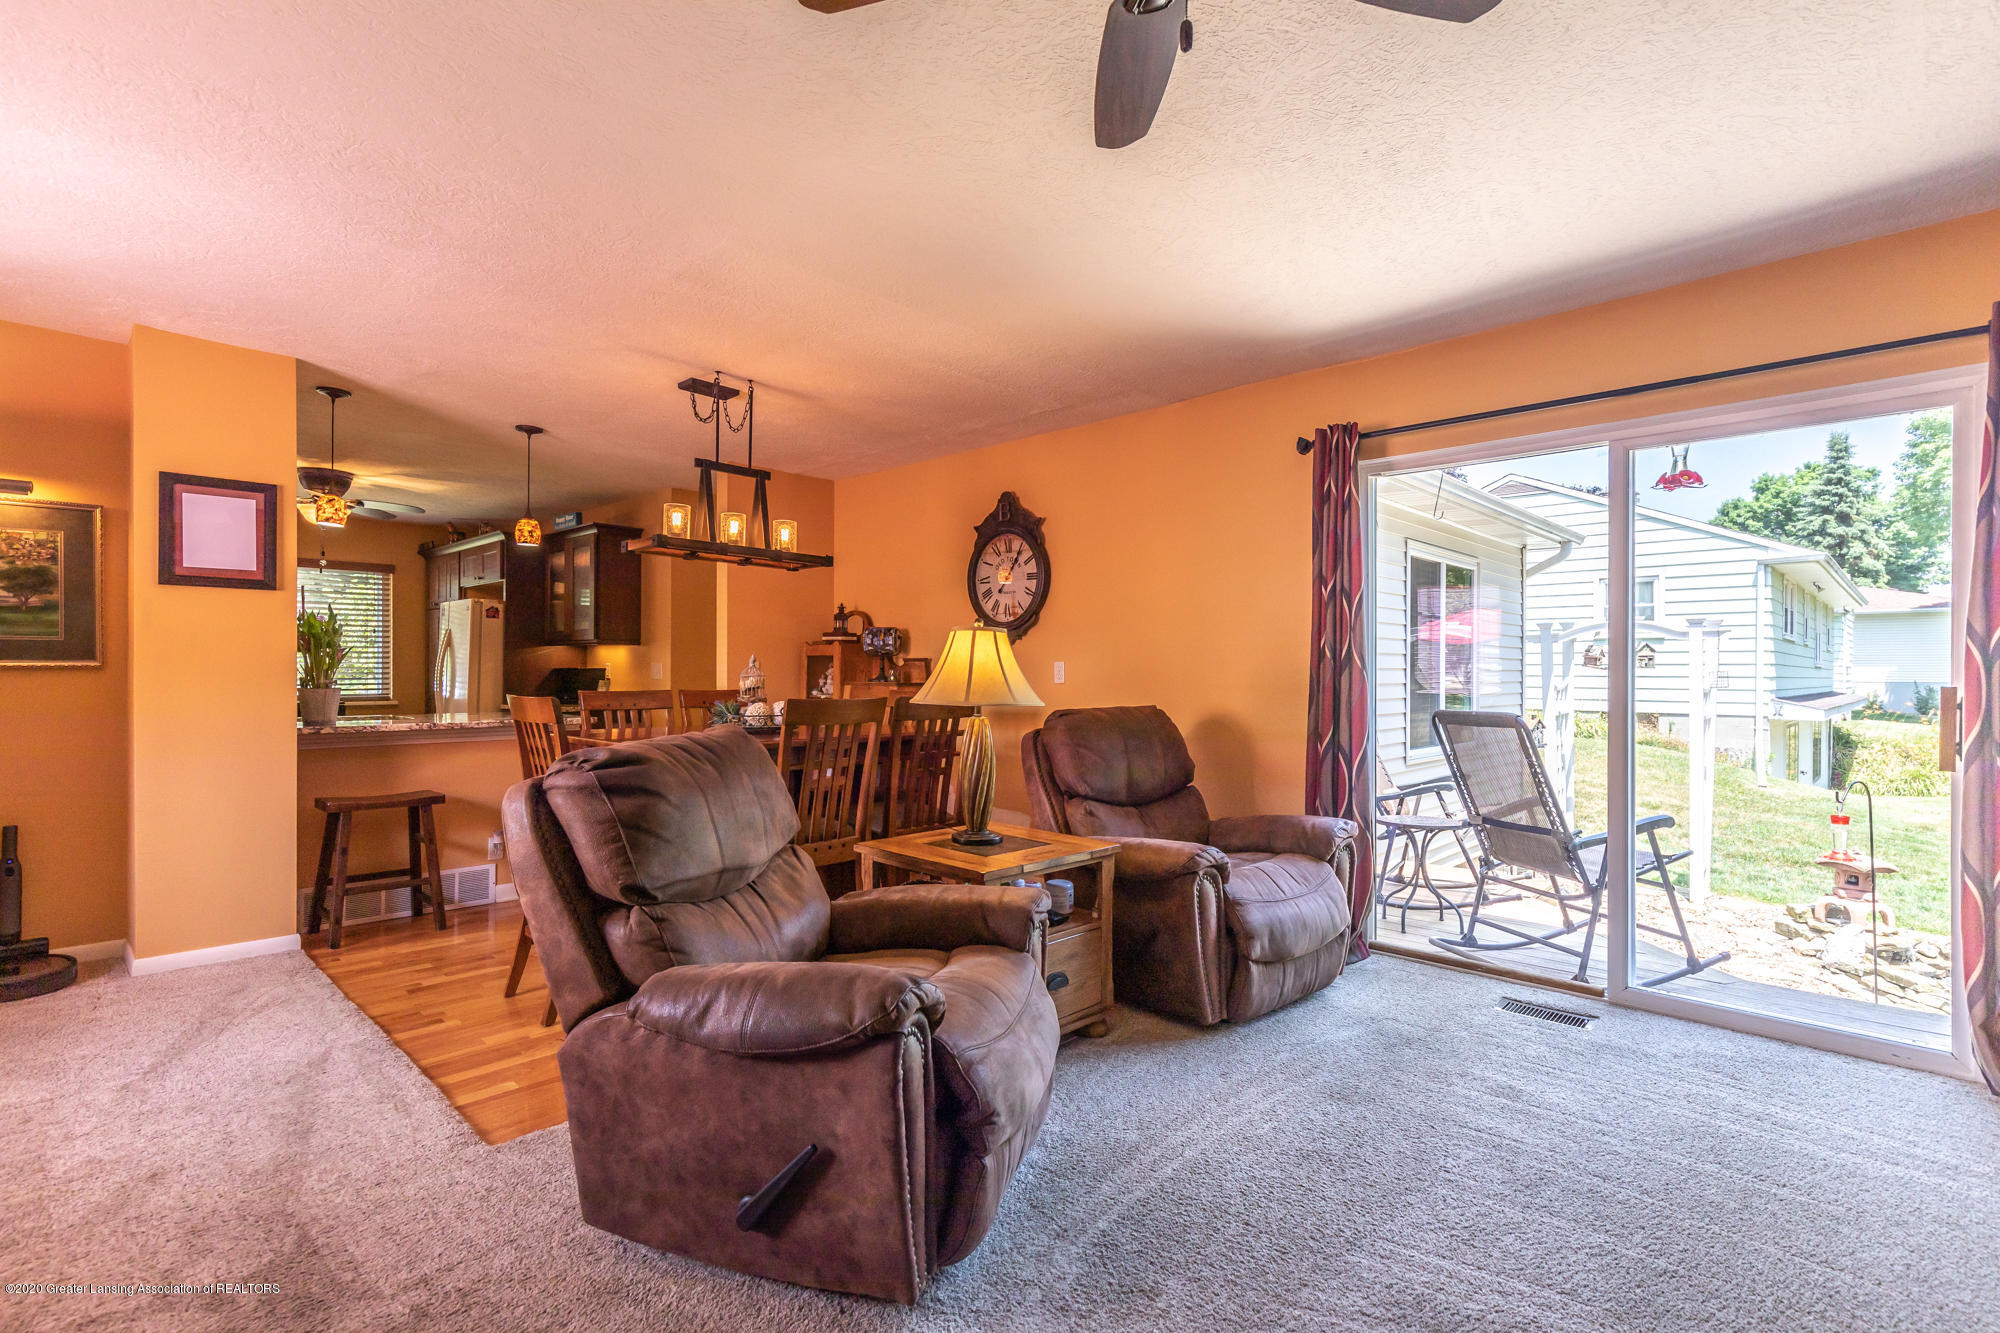 11455 E River Dr - eriverliving2(1of1) - 9